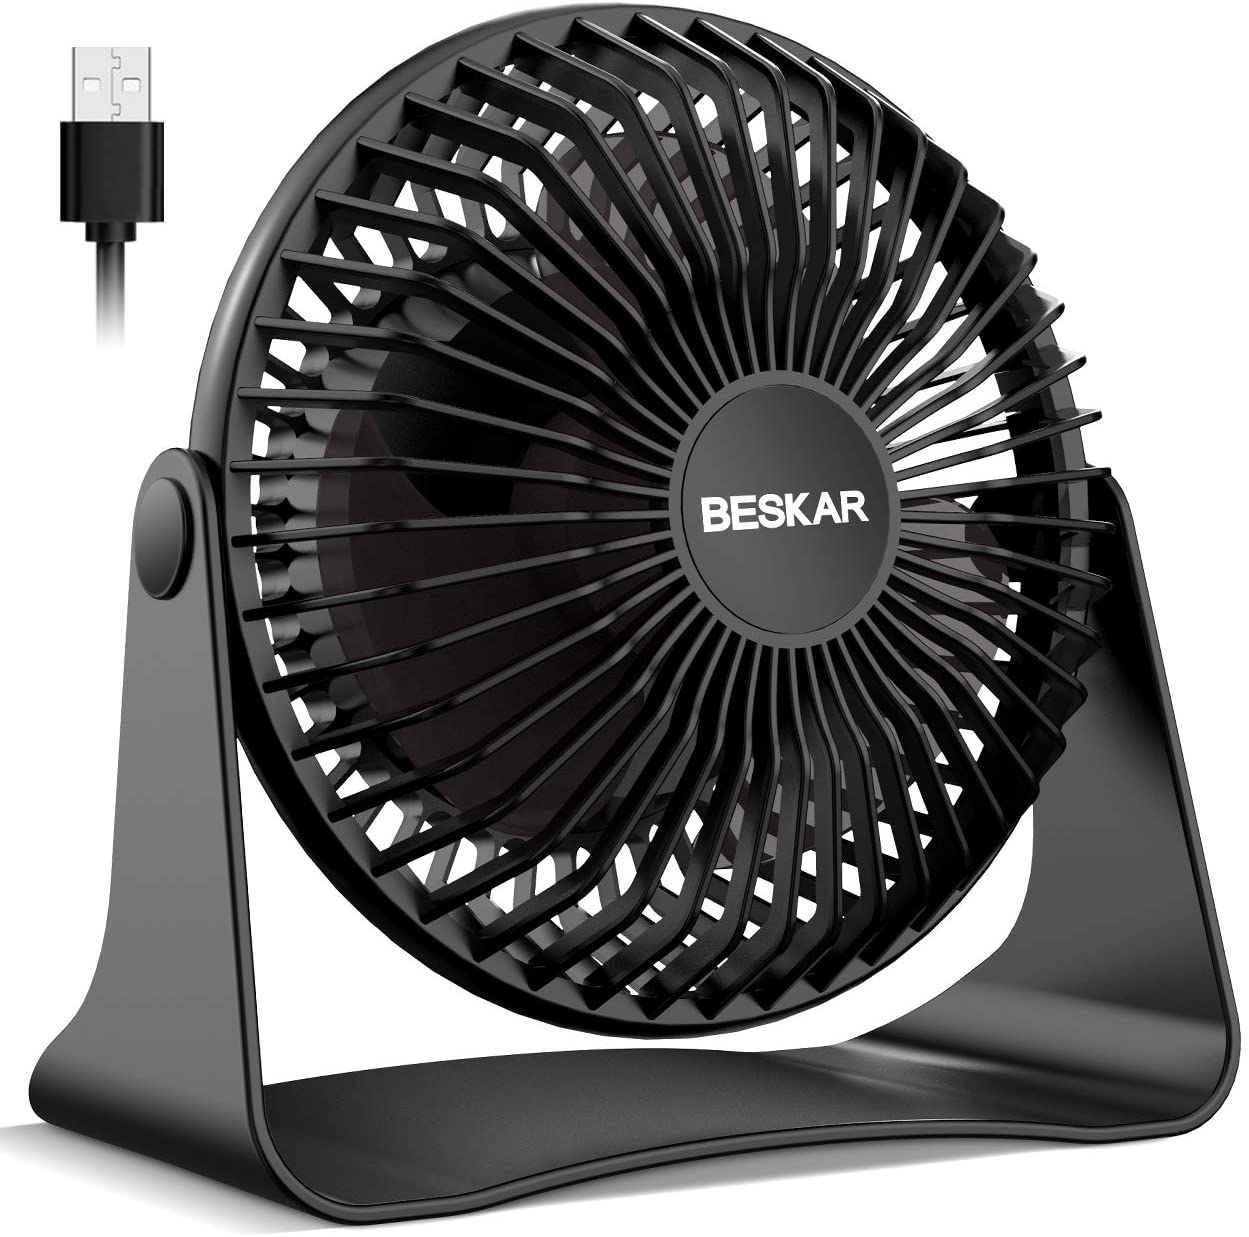 BESKAR USB Small Desk Fan, 6 Inch Portable Fans with 3 Speeds Strong Airflow, Quiet Operation and 360°Rotate, Persona Table Fan for Home,Office, Bedroom- 3.9 ft Cord